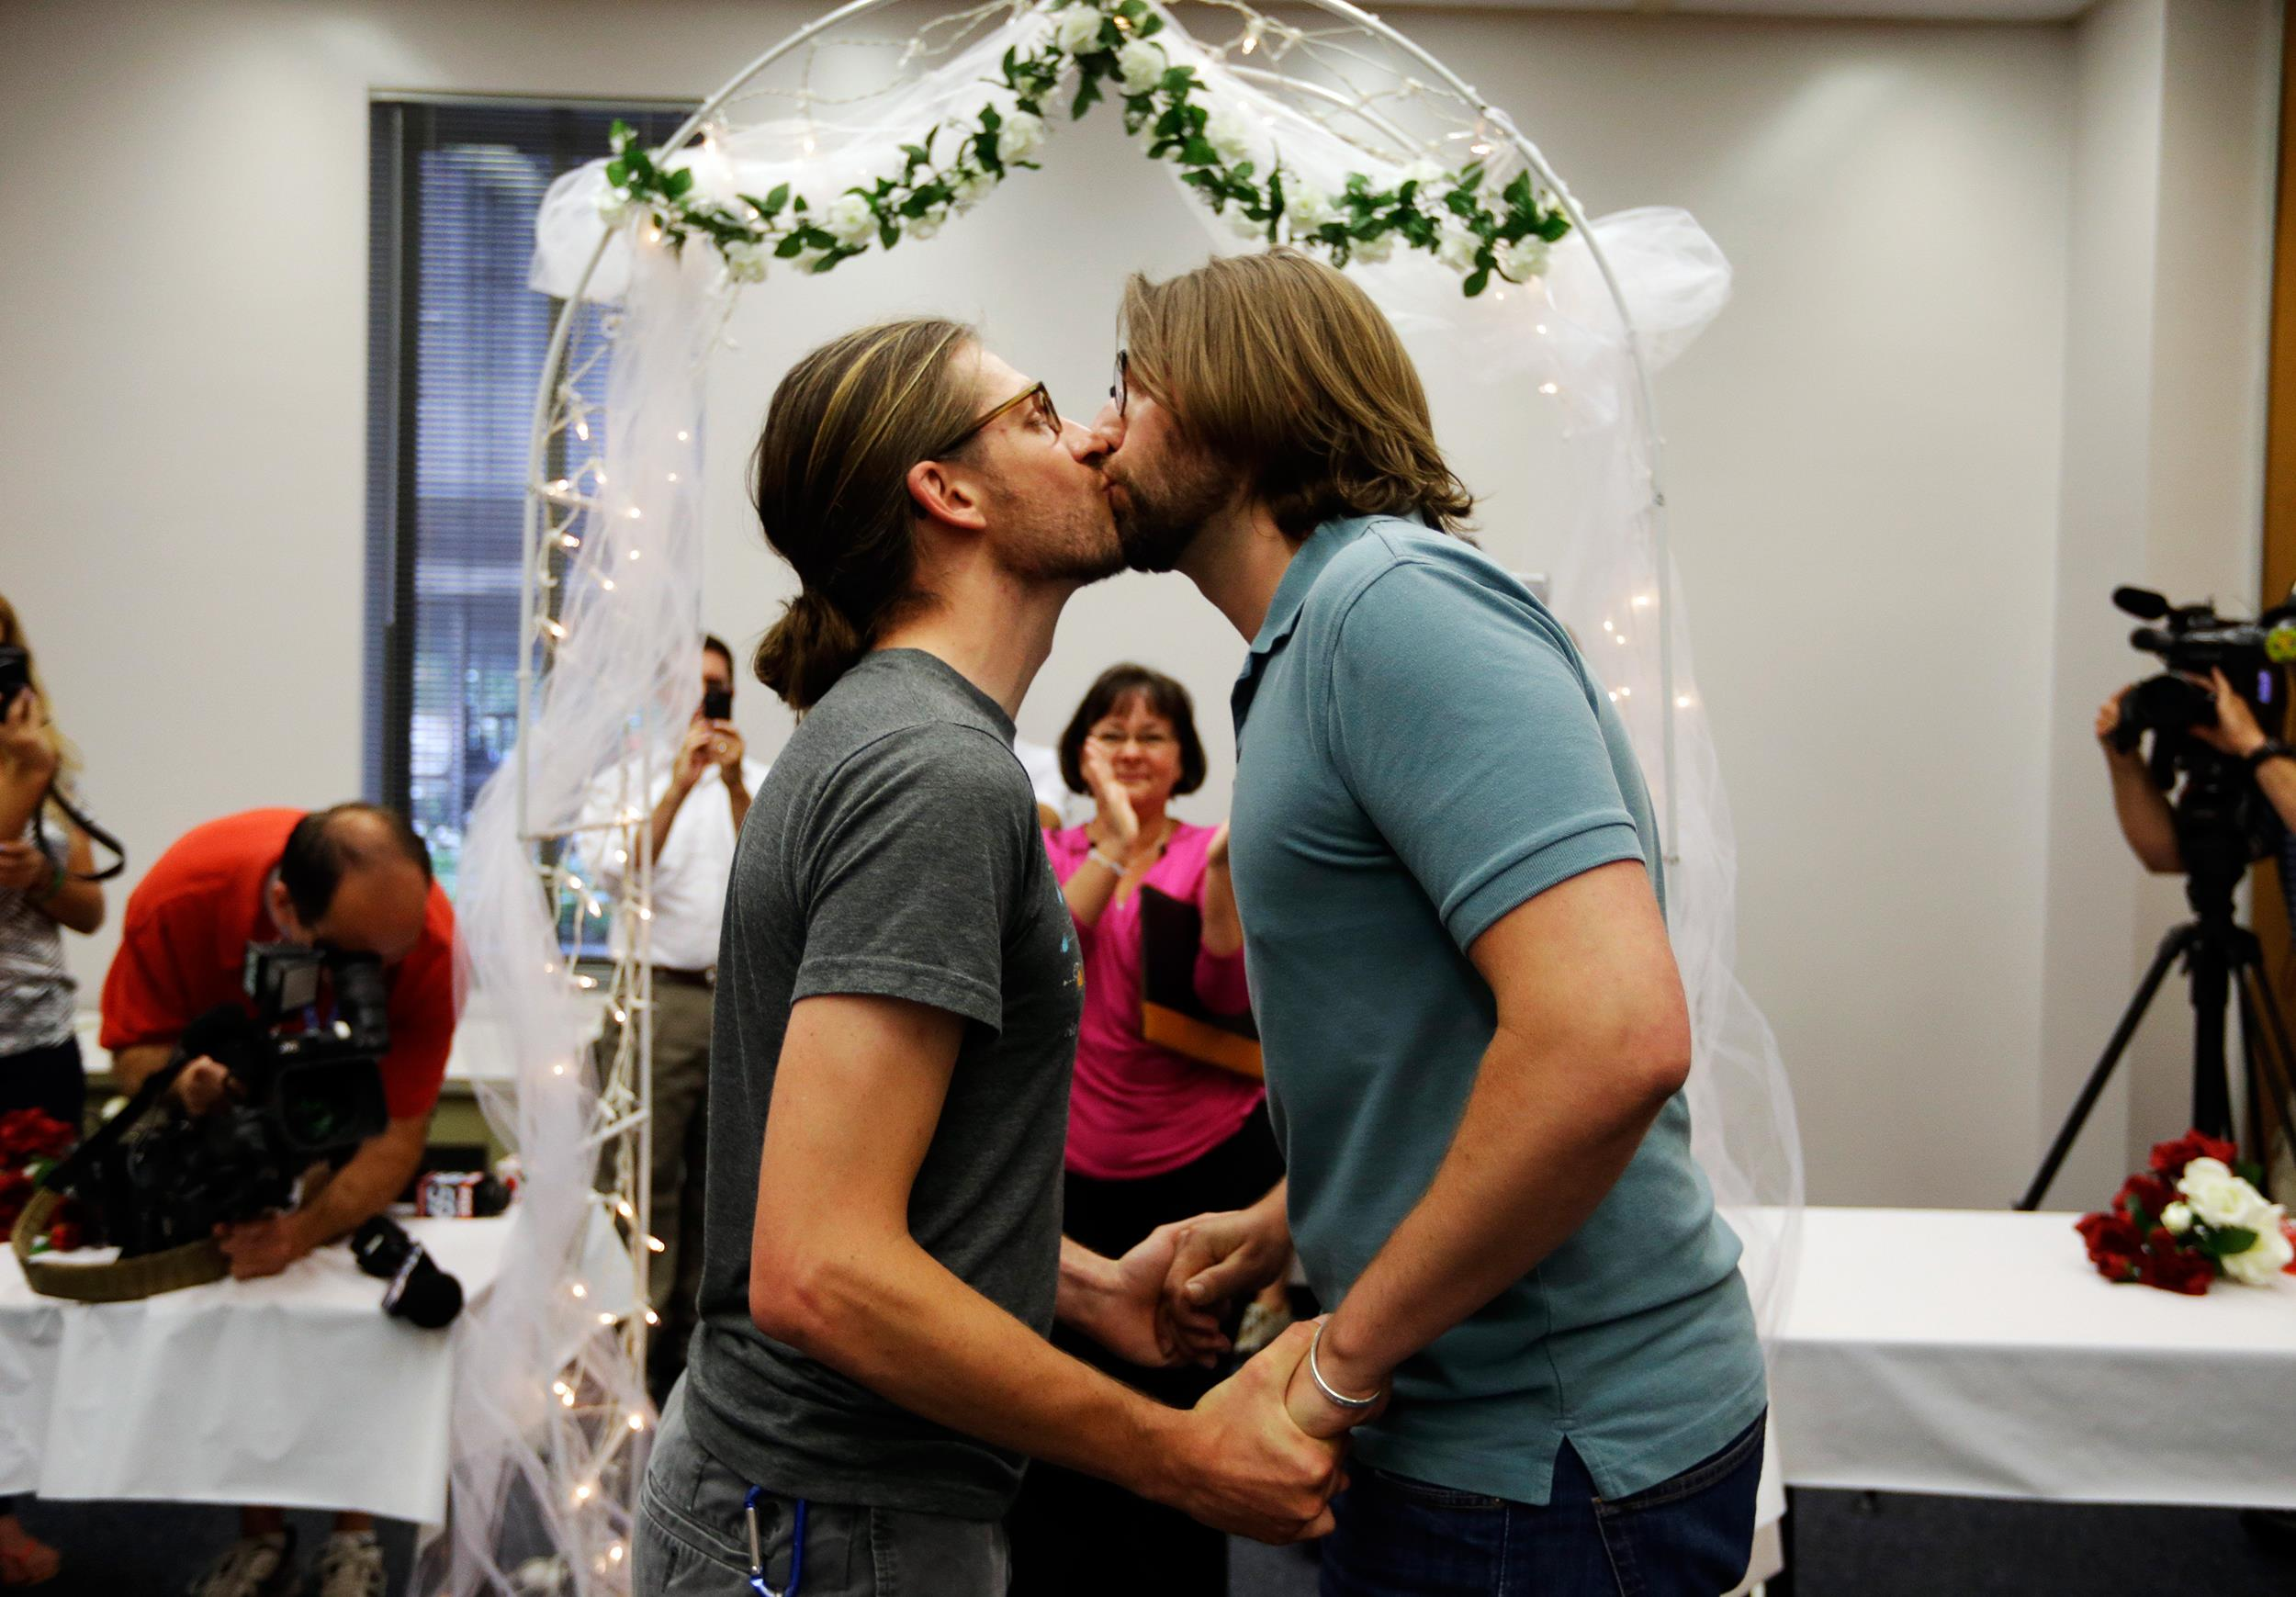 Image: Jake Miller, 30, and Craig Bowen, 35, right, kiss after being married by Marion County Clerk Beth White, center, in Indianapolis